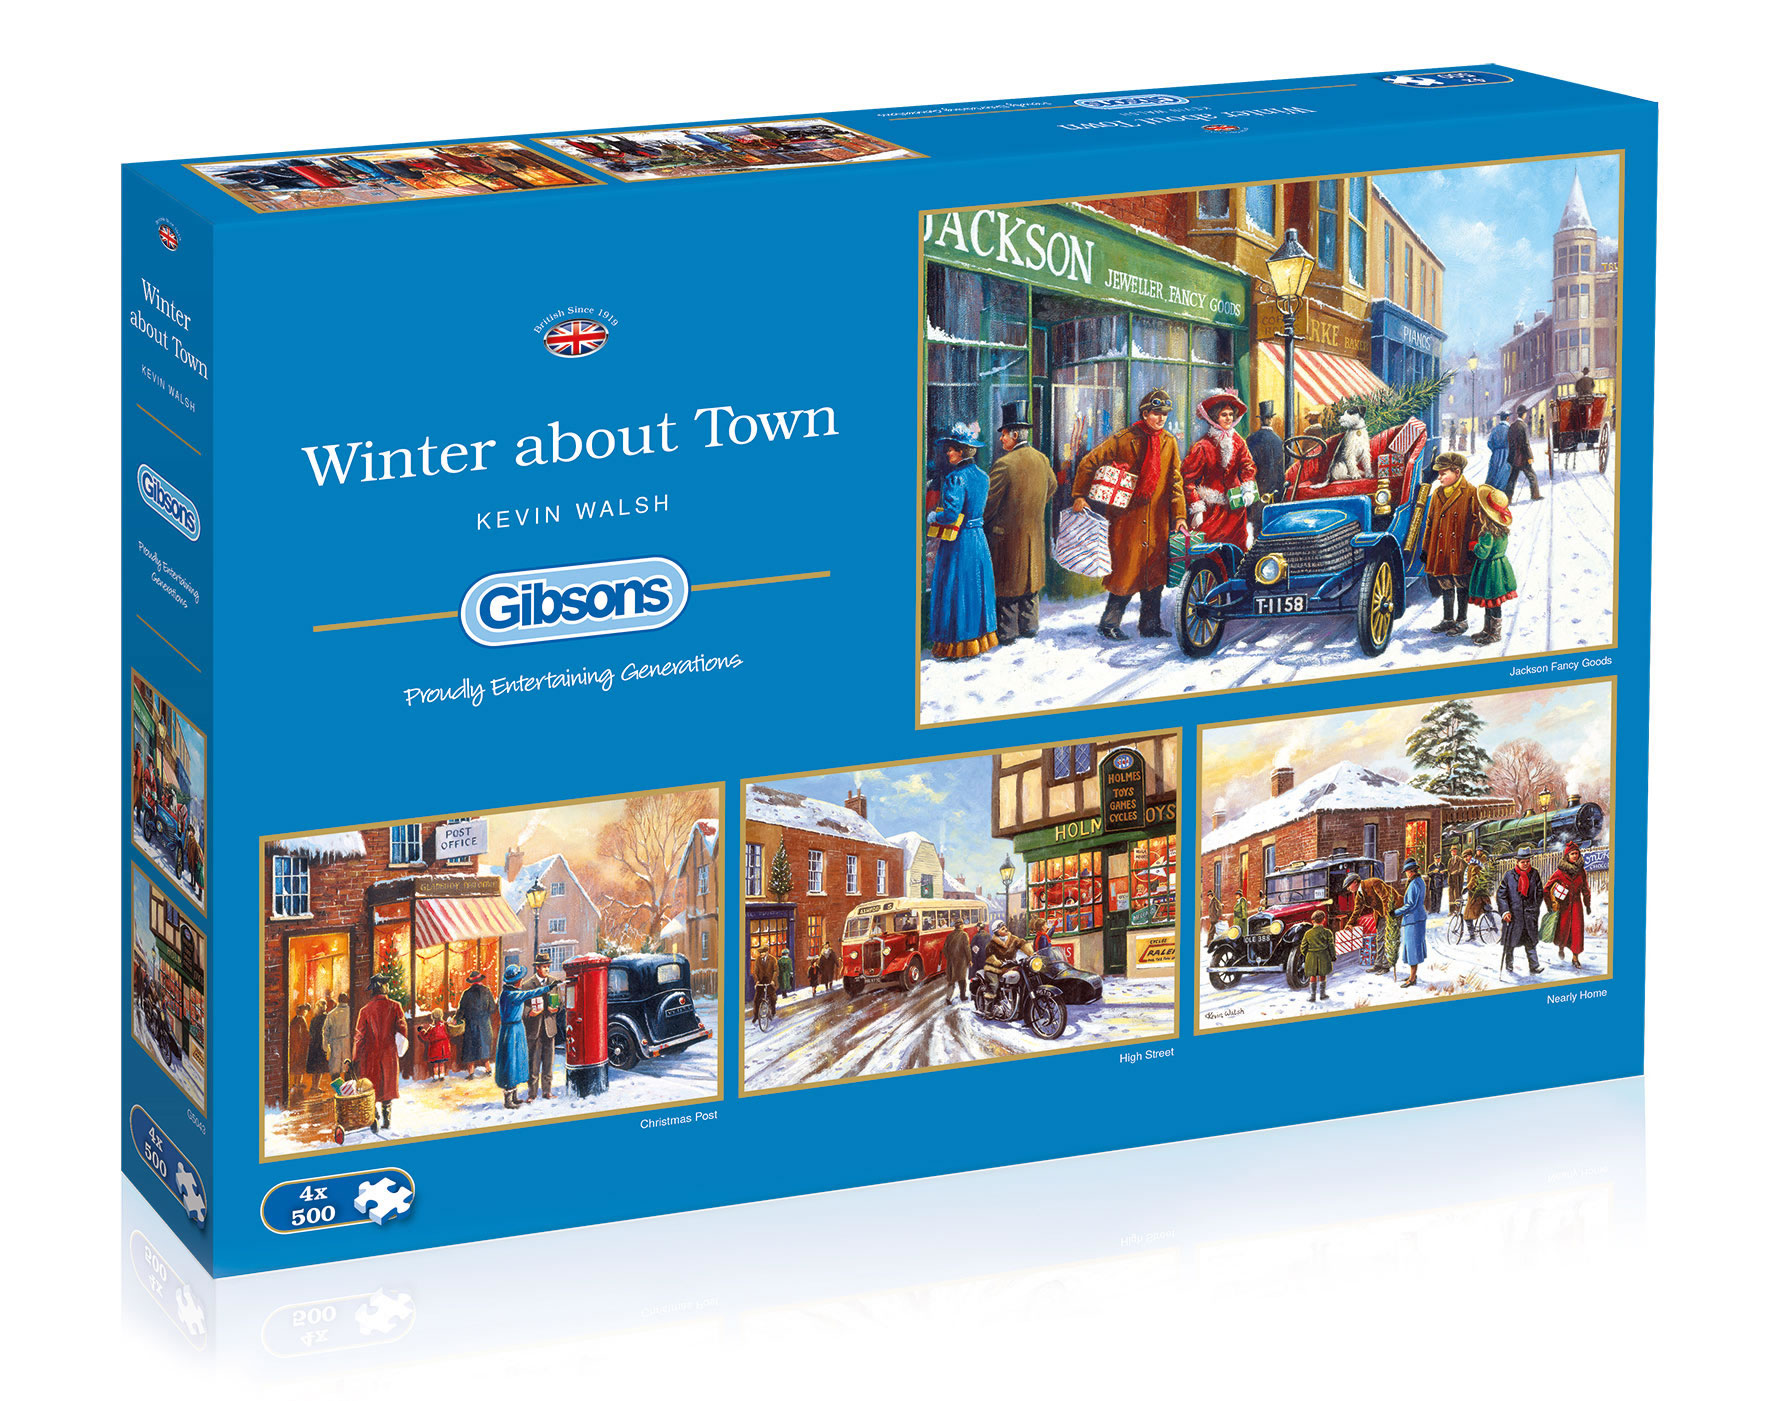 Winter About Town by Kevin Walsh 4 x 500 puzzle box set